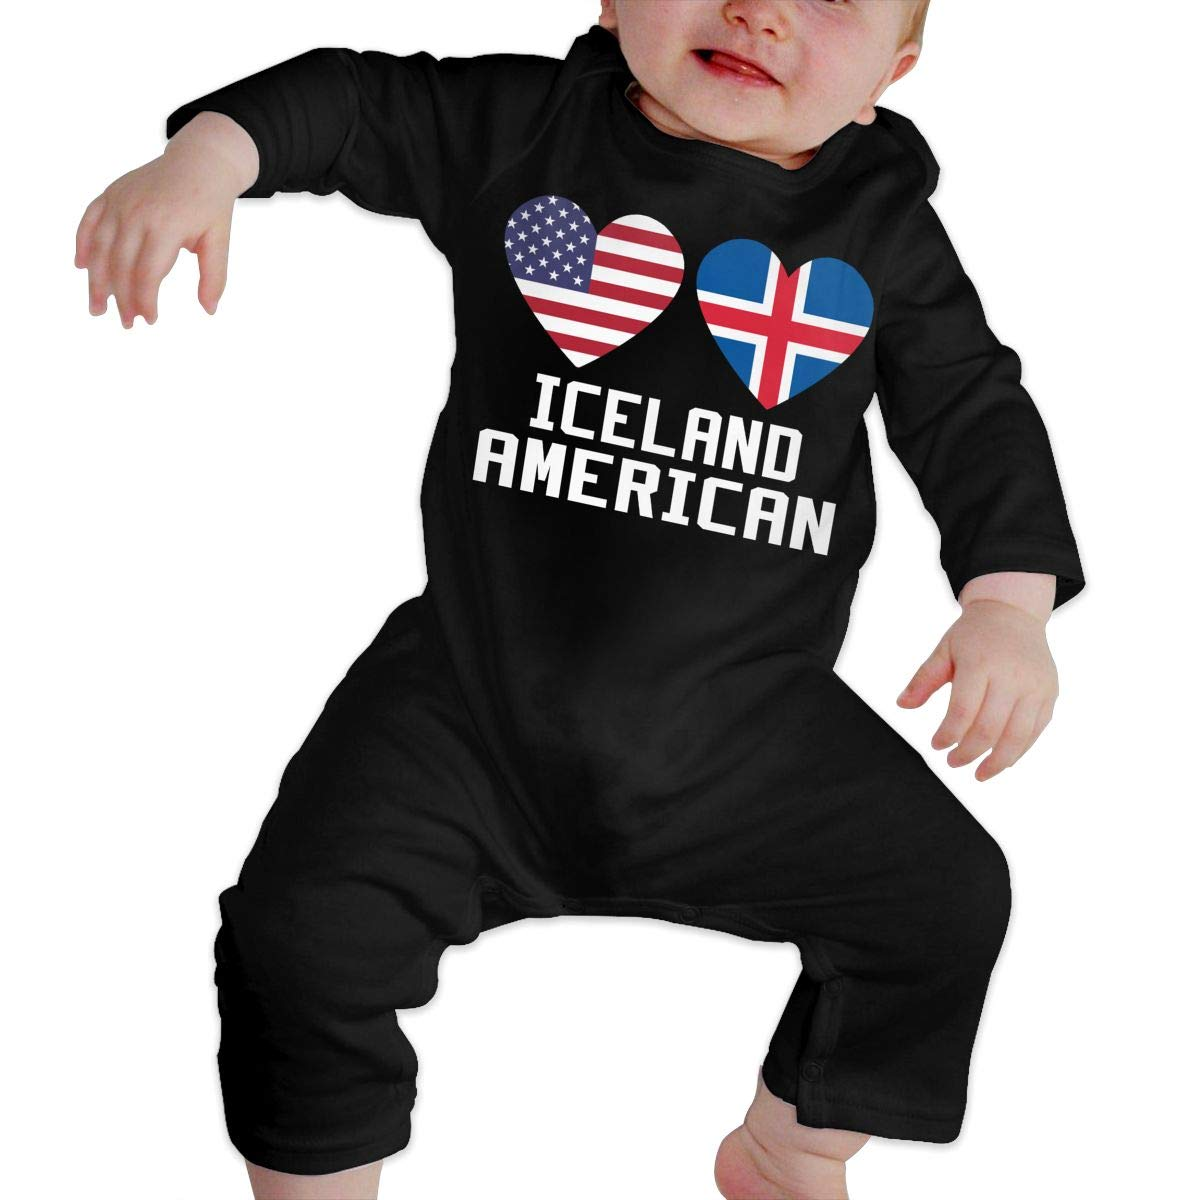 LBJQ8 Iceland American Hearts Unisex Baby Essential Basic Bodysuit Jumpsuit Outfits